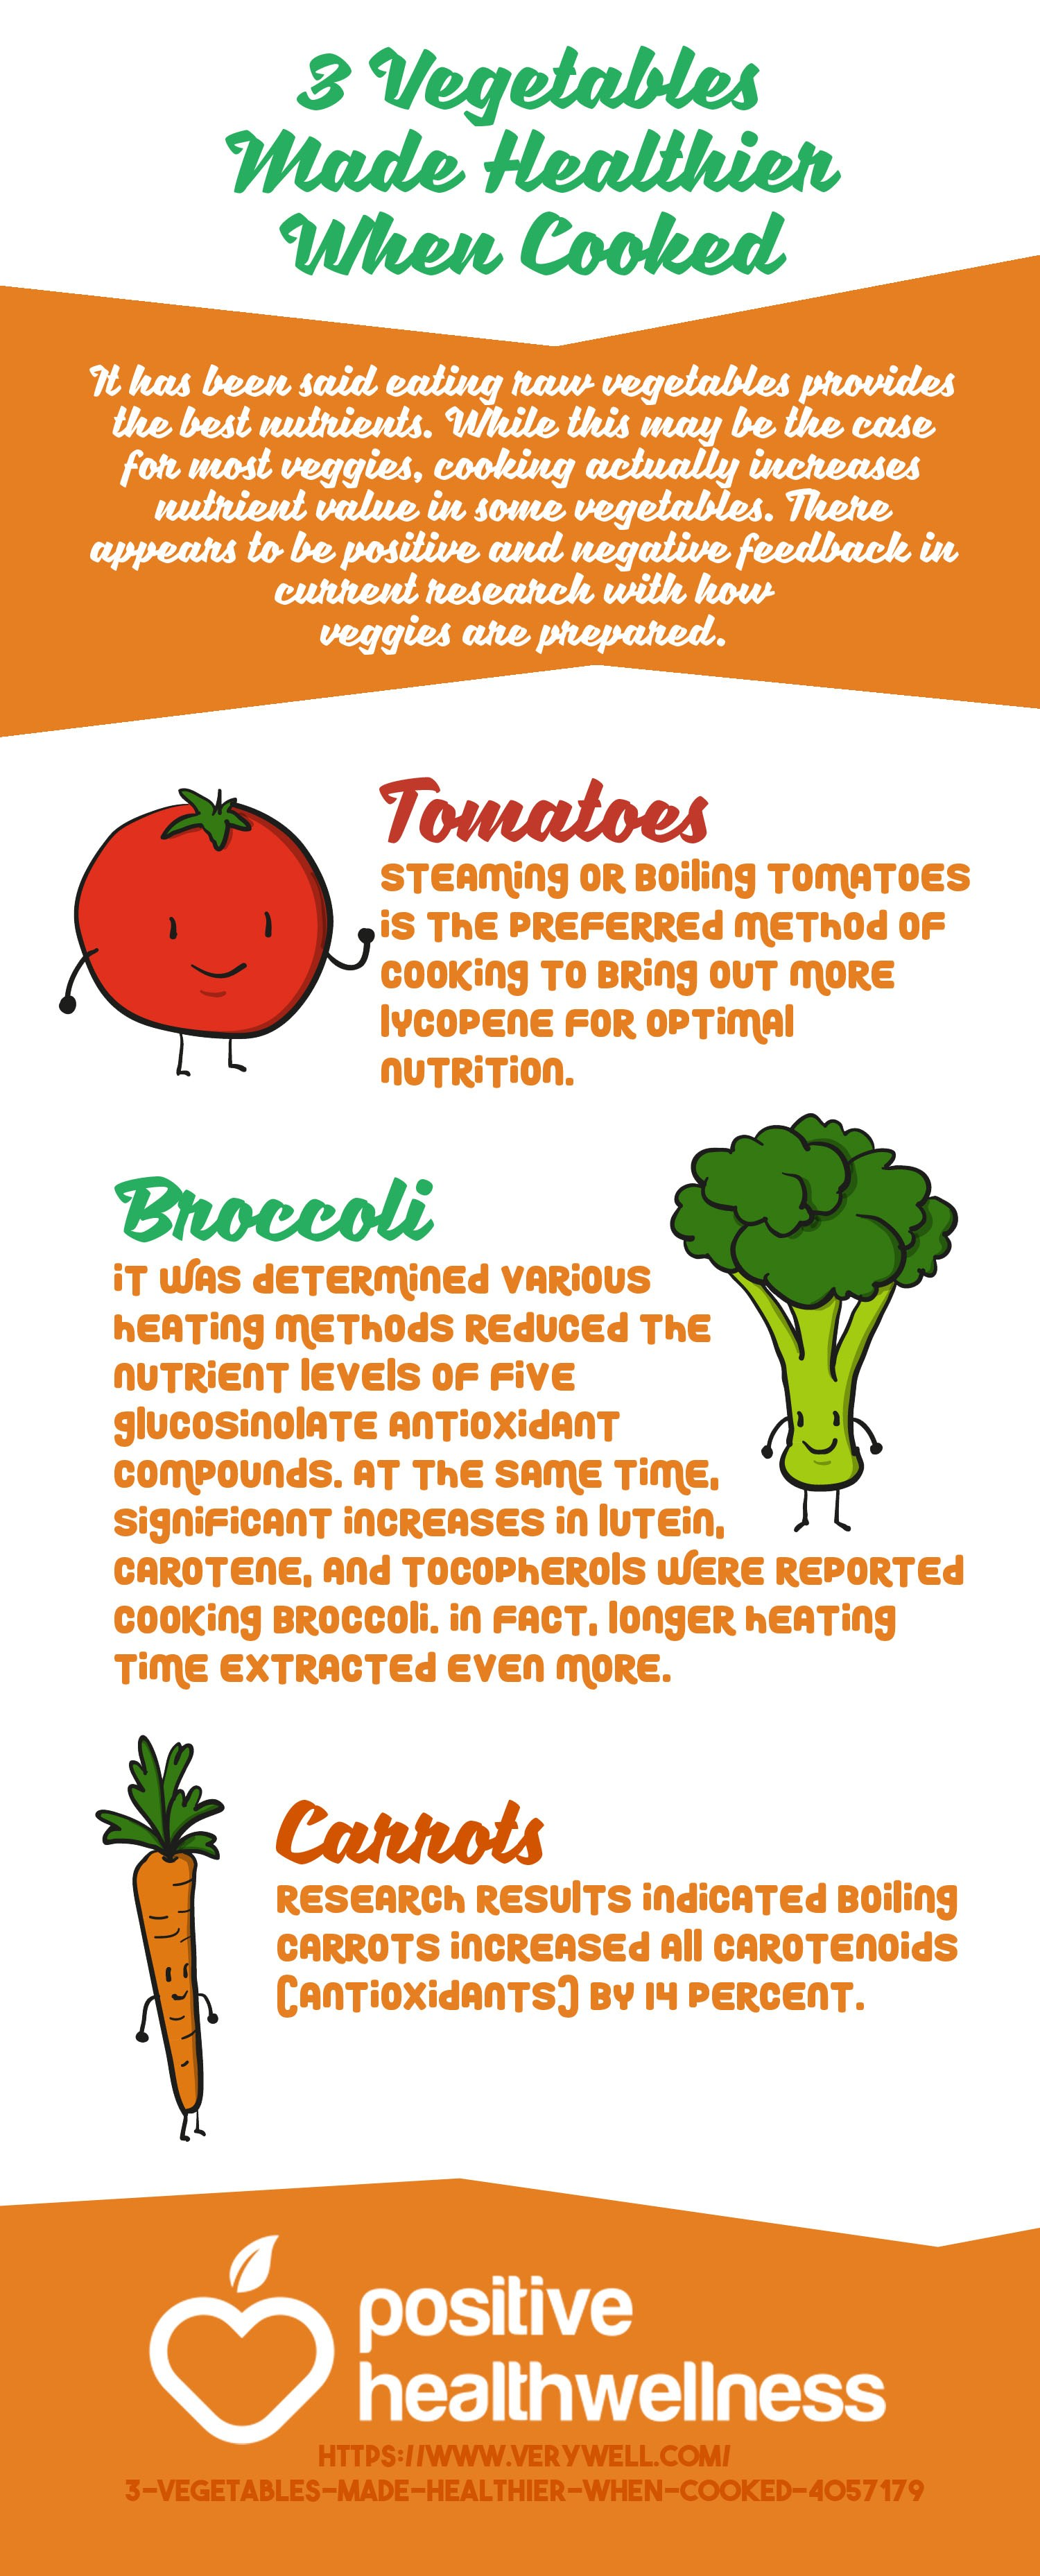 3 Vegetables Made Healthier When Cooked